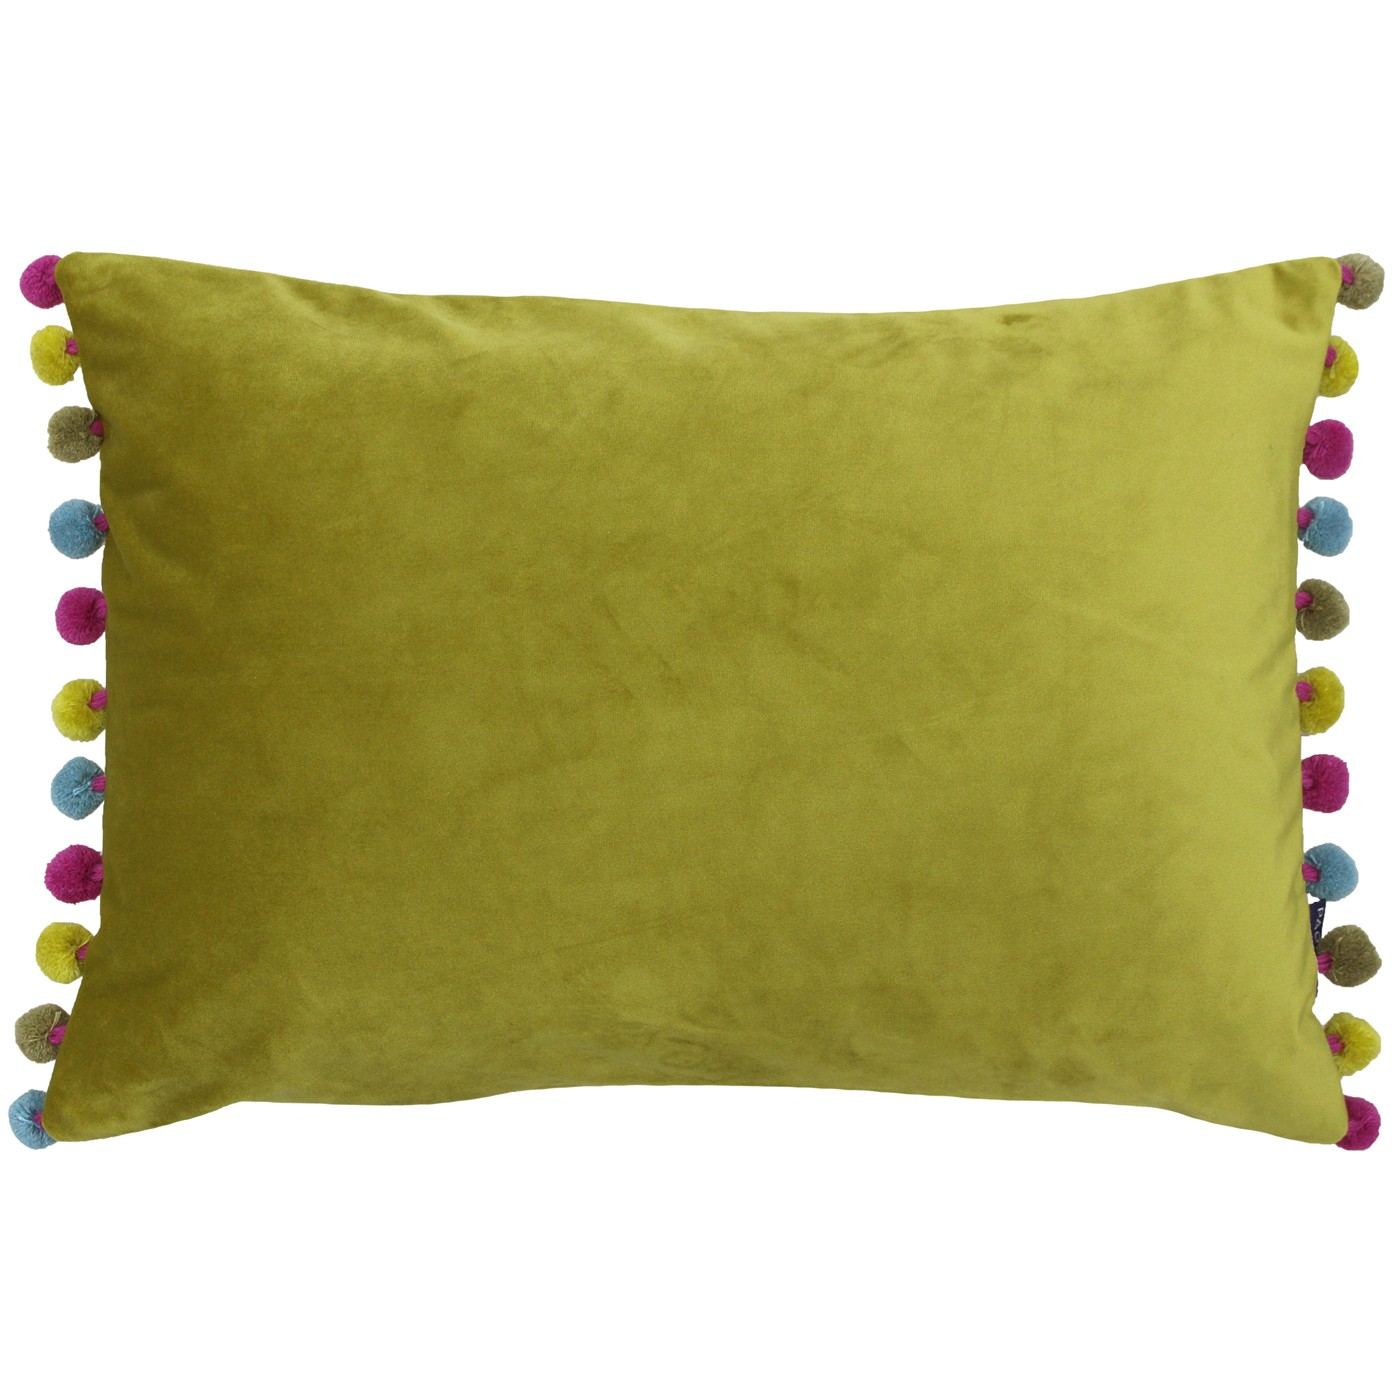 Fiesta Cushion, Bamboo Multi by Paoletti